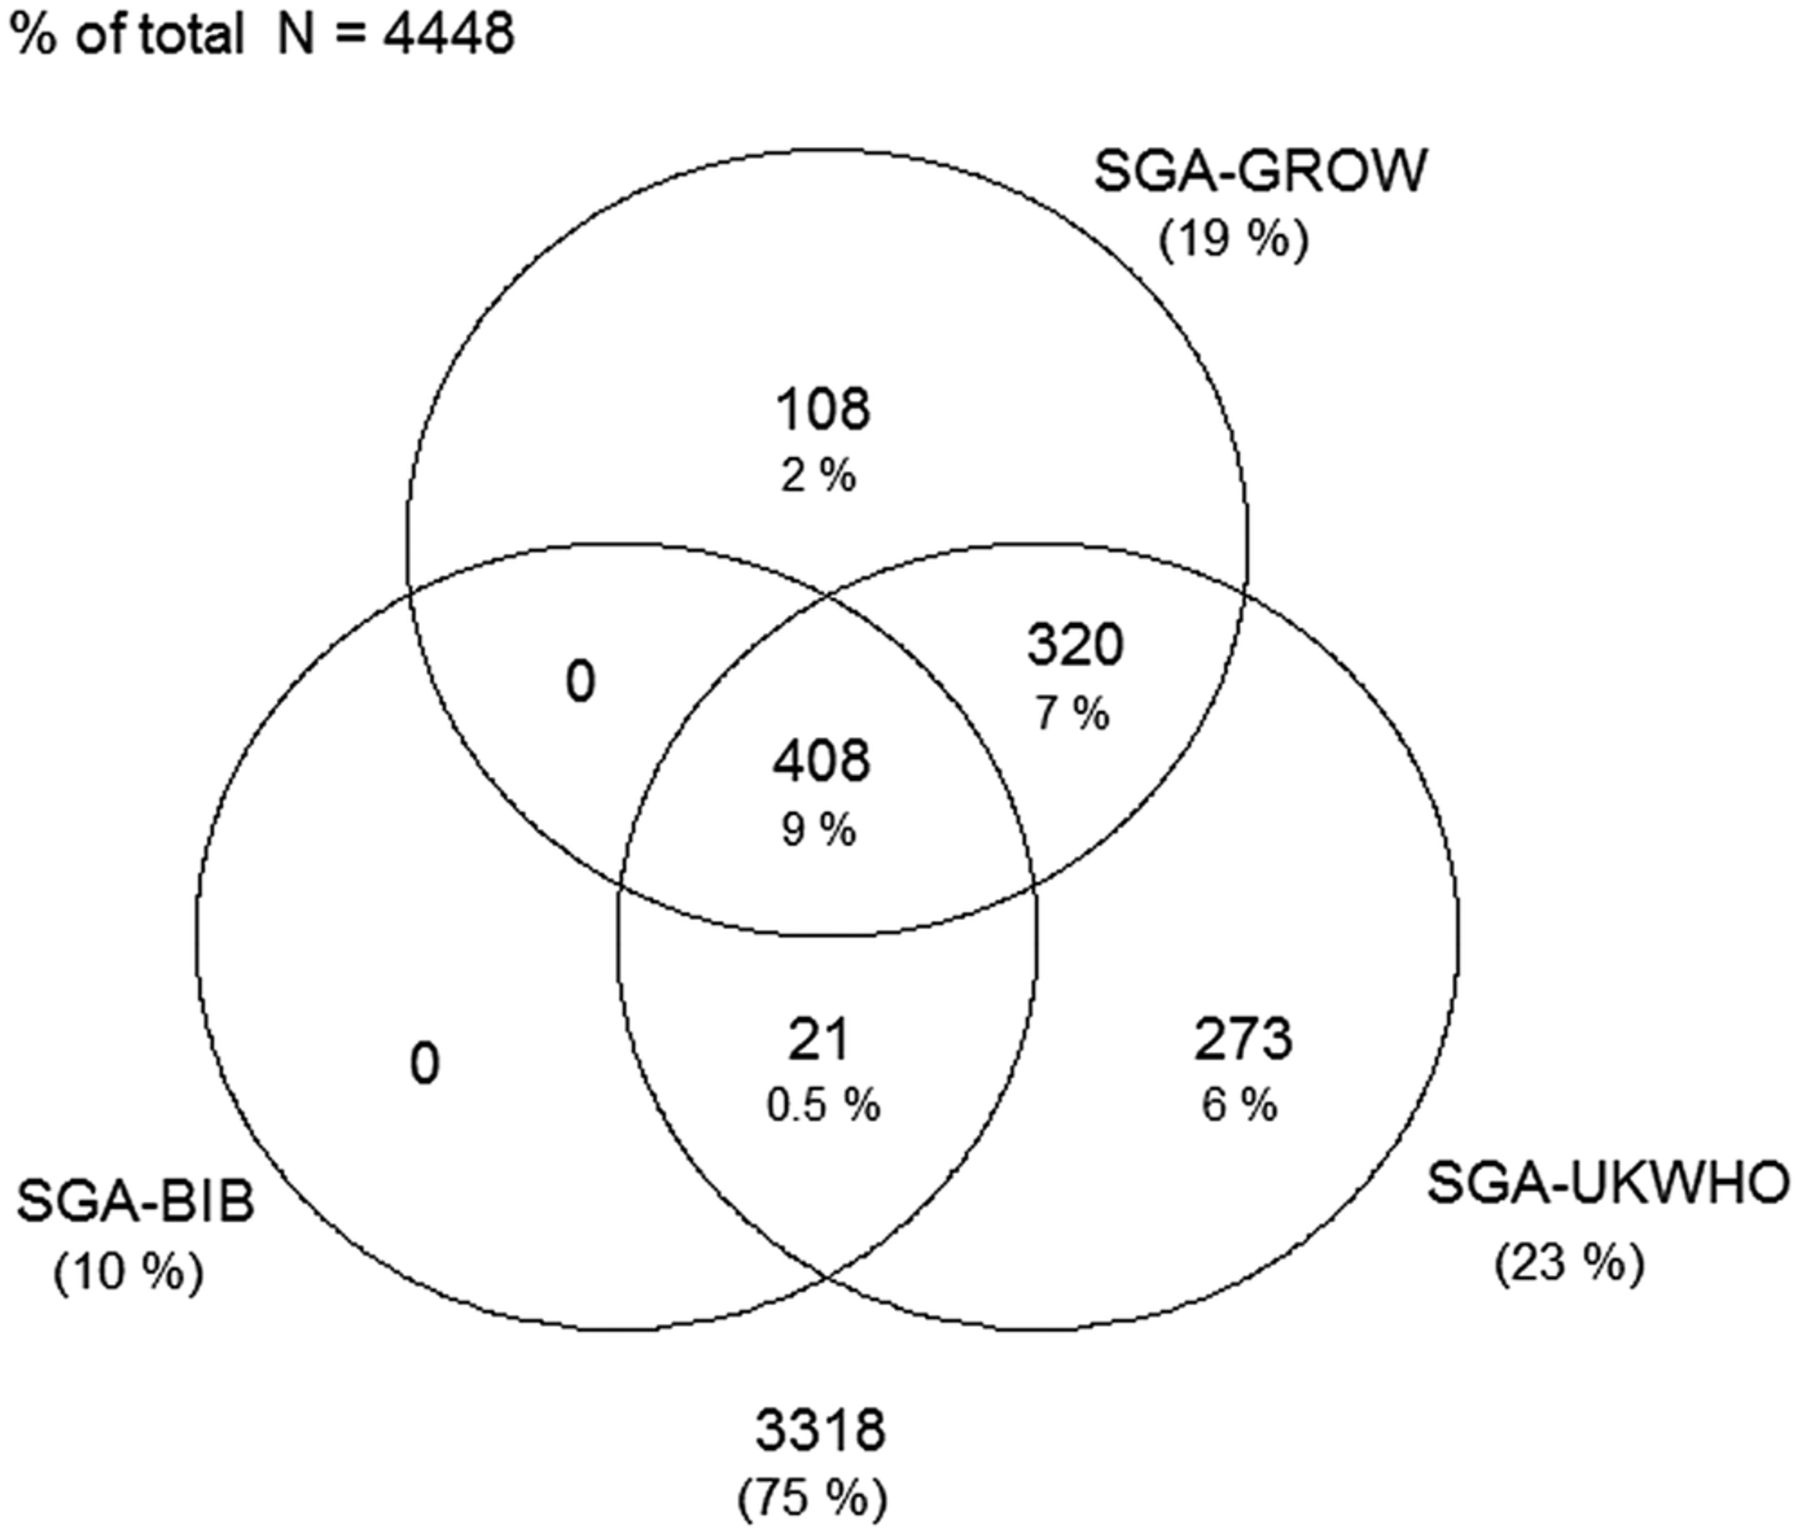 Small for gestational age and large for gestational age thresholds download figure open in new tab download powerpoint figure 1 venn diagram pooptronica Gallery